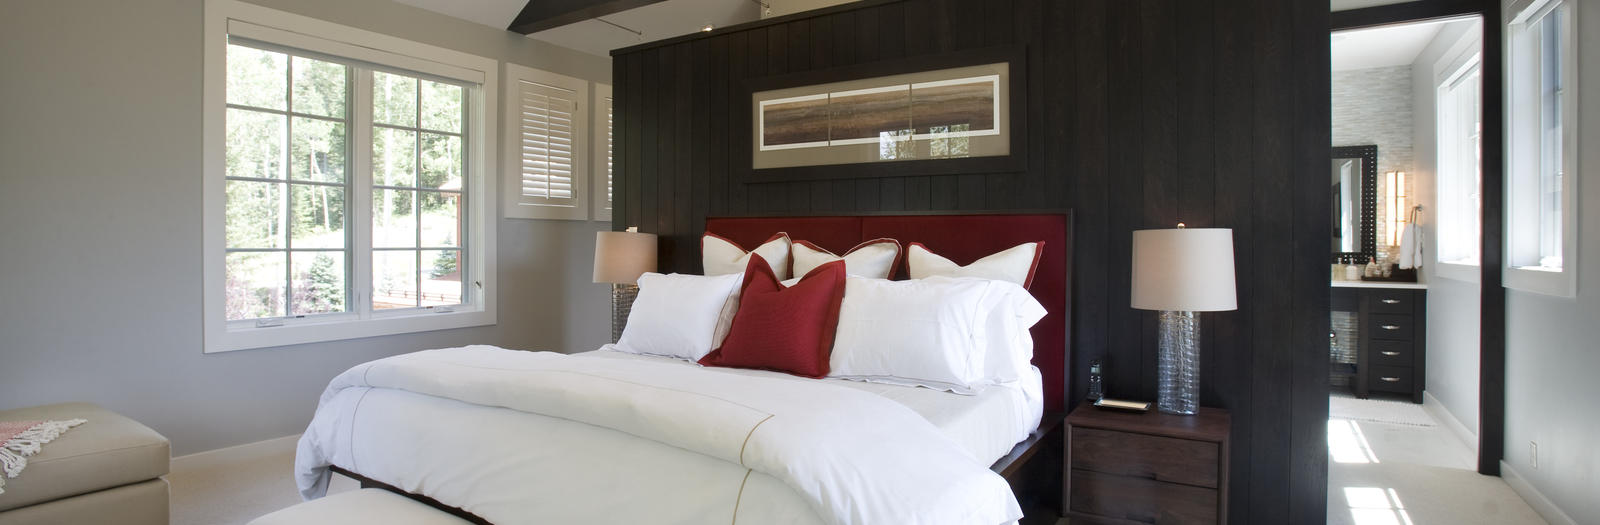 Contemporary Bedroom with stained wood wall paneling